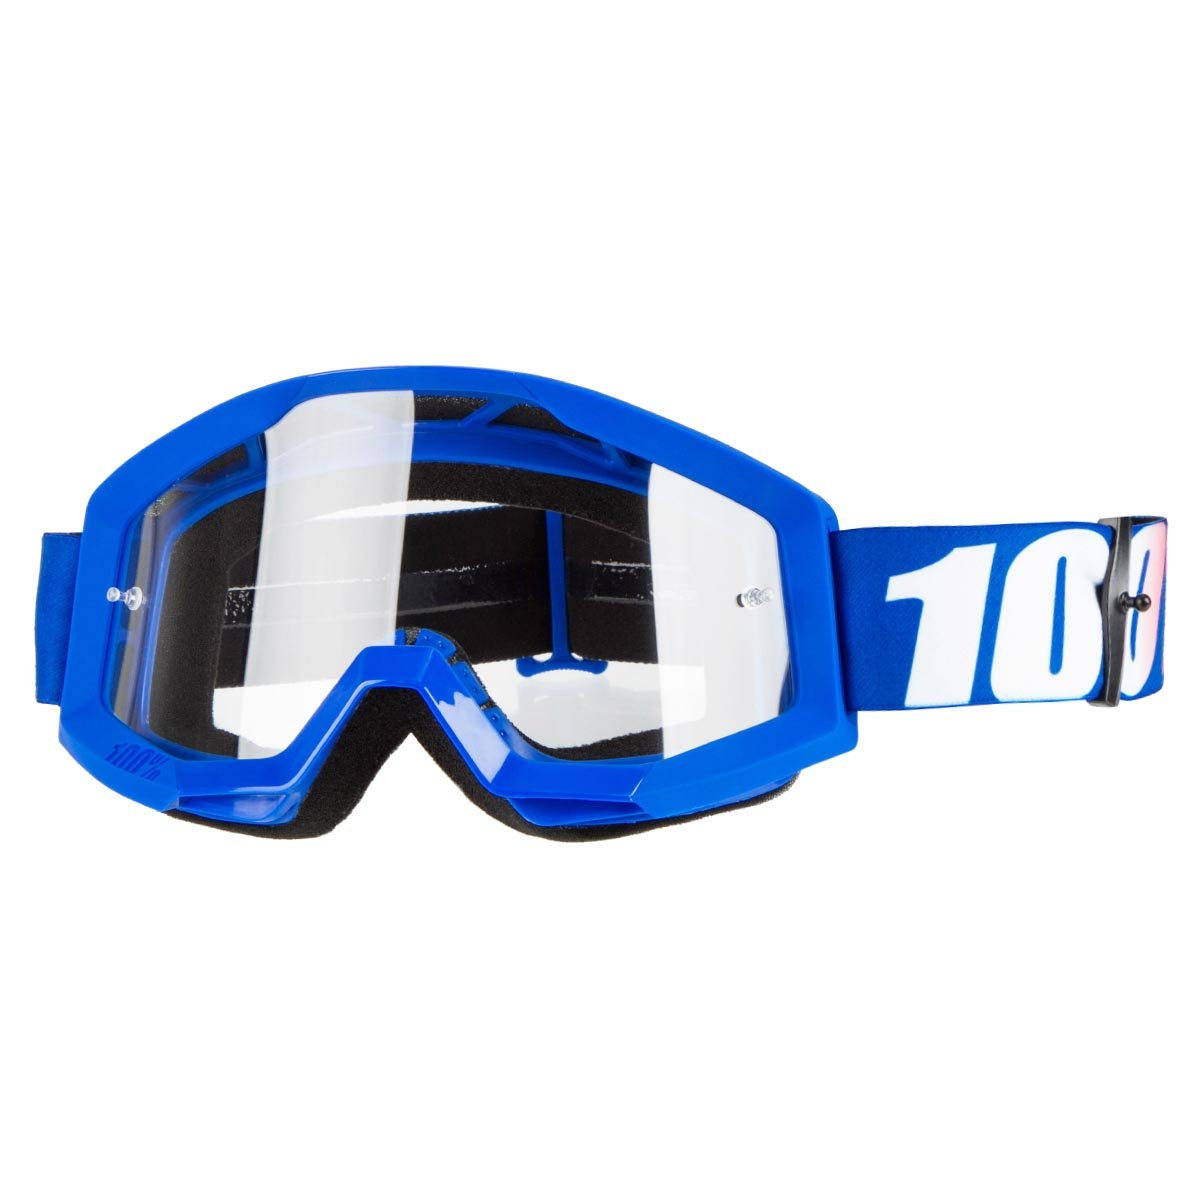 Offroad MX MTB Motocross 100/% STRATA Goggles CLEAR OR MIRROR LENS ALL COLORS